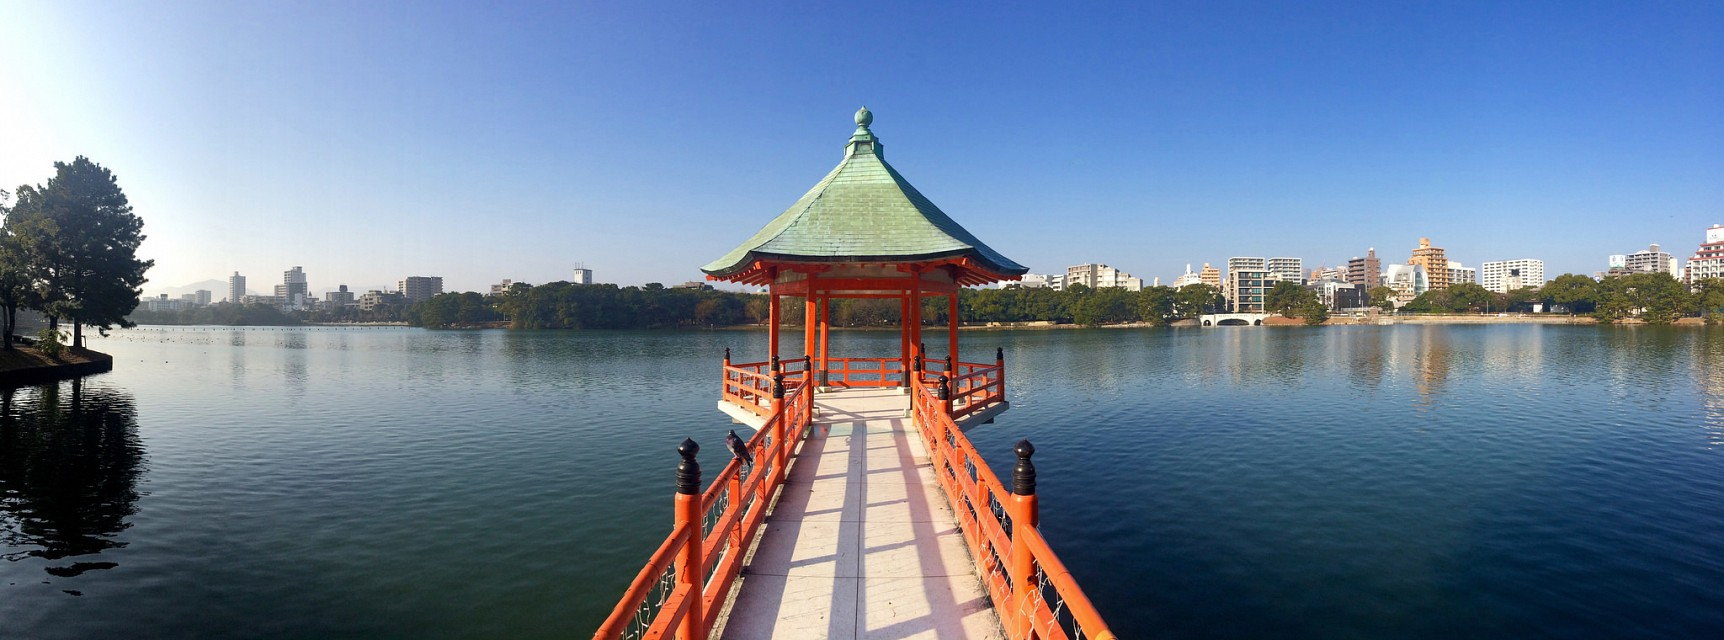 Ōhori Park - Urban Park in Fukuoka - Thousand Wonders